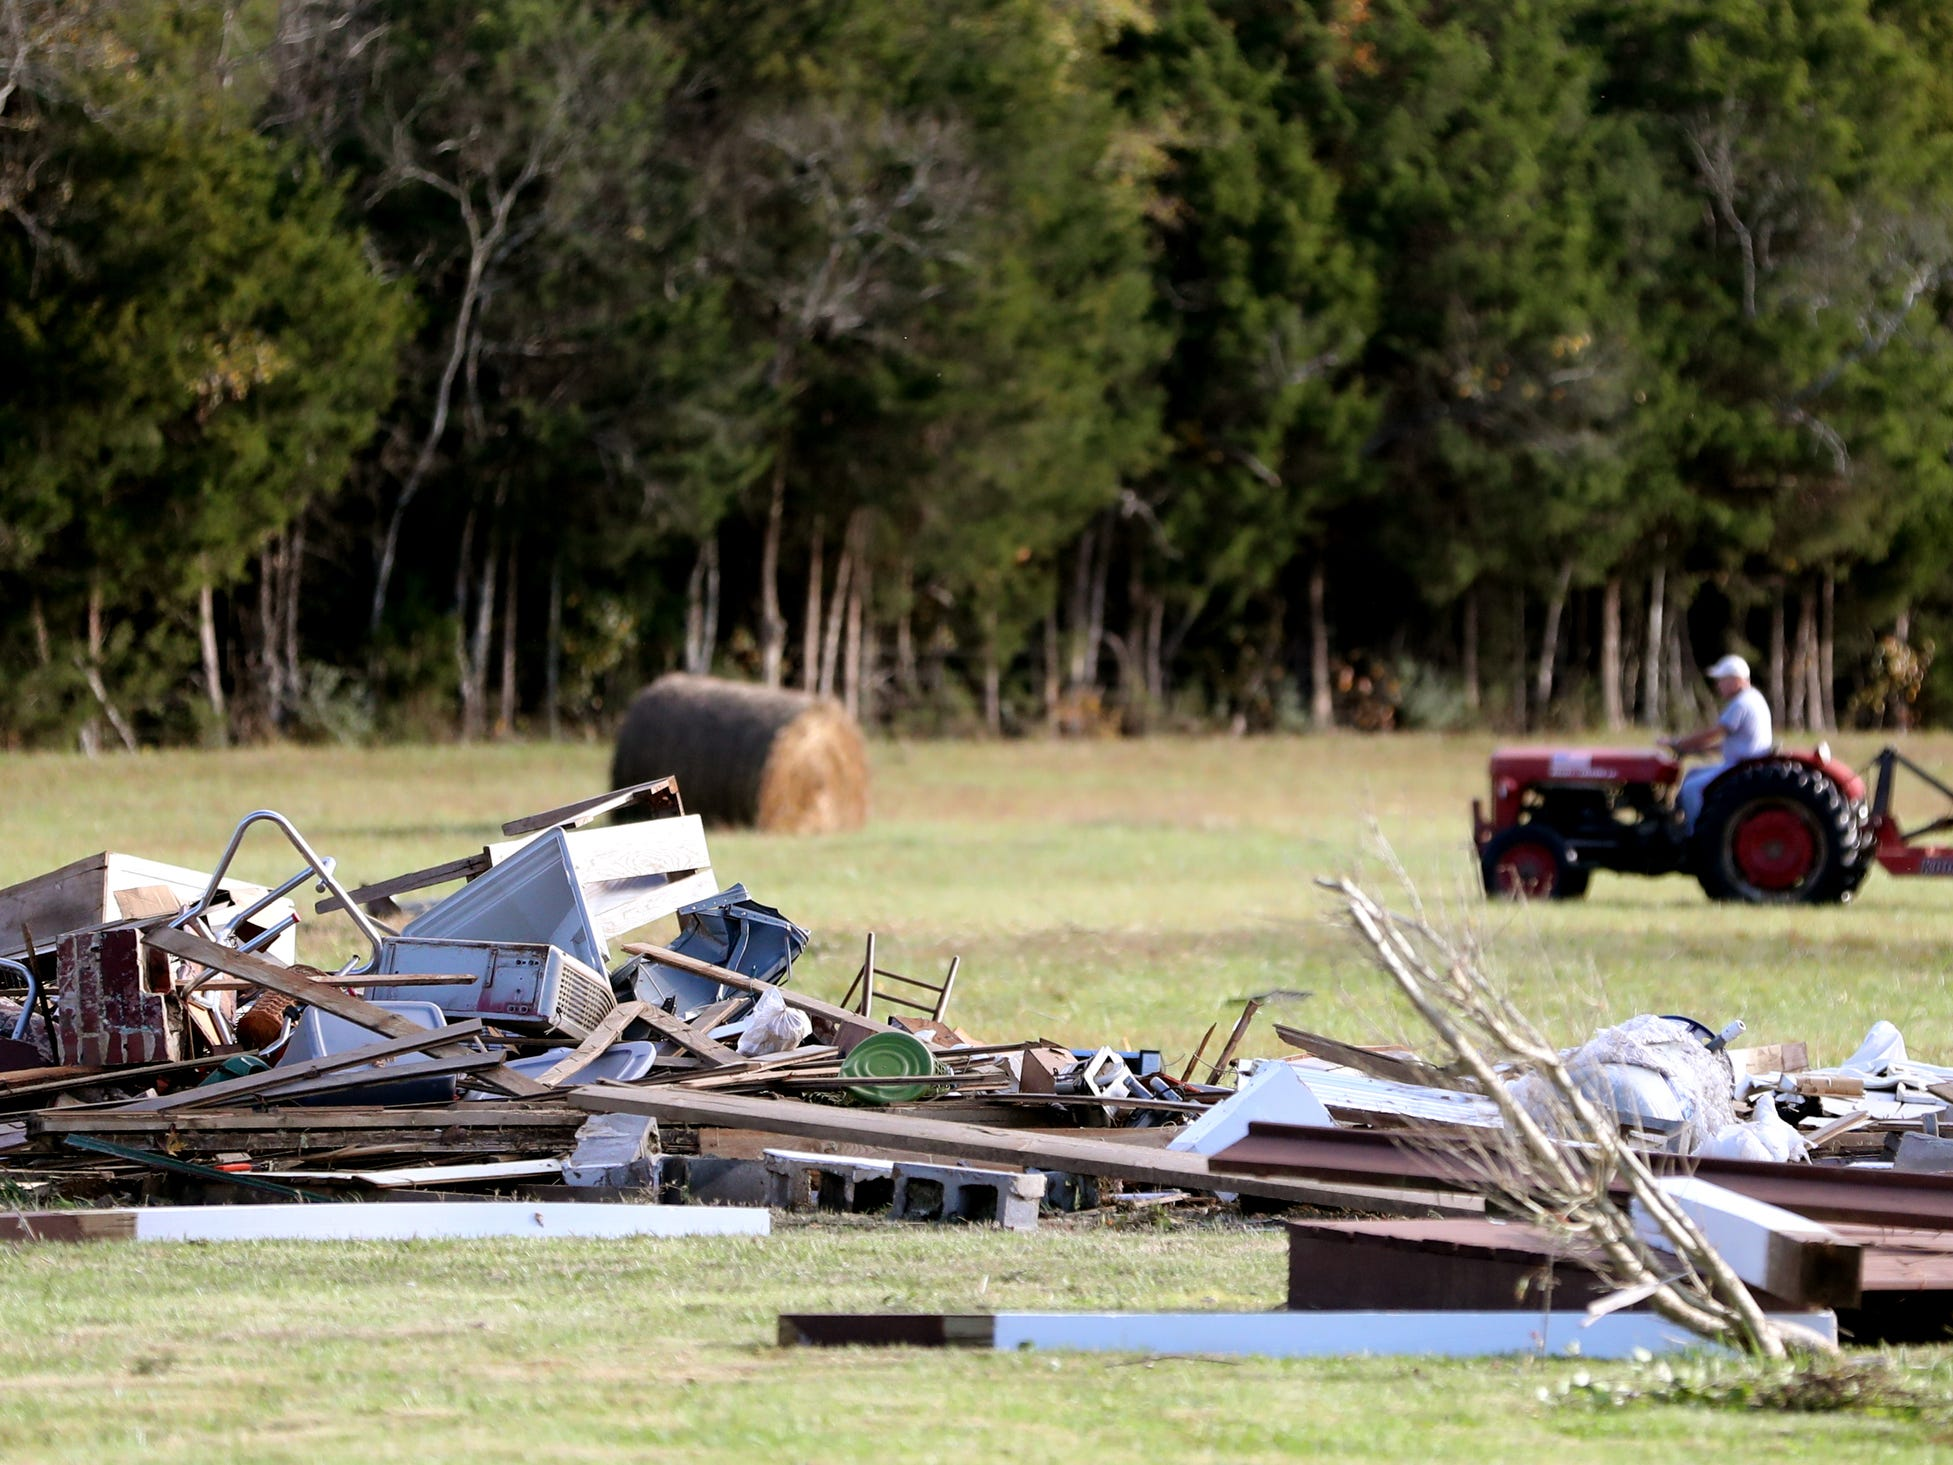 Tornado damage and cleanup efforts along Rpck Springs Midland Road following a tornado that hit the area overnight in Christiana, Tenn. on Tuesday, Nov. 6, 2018.